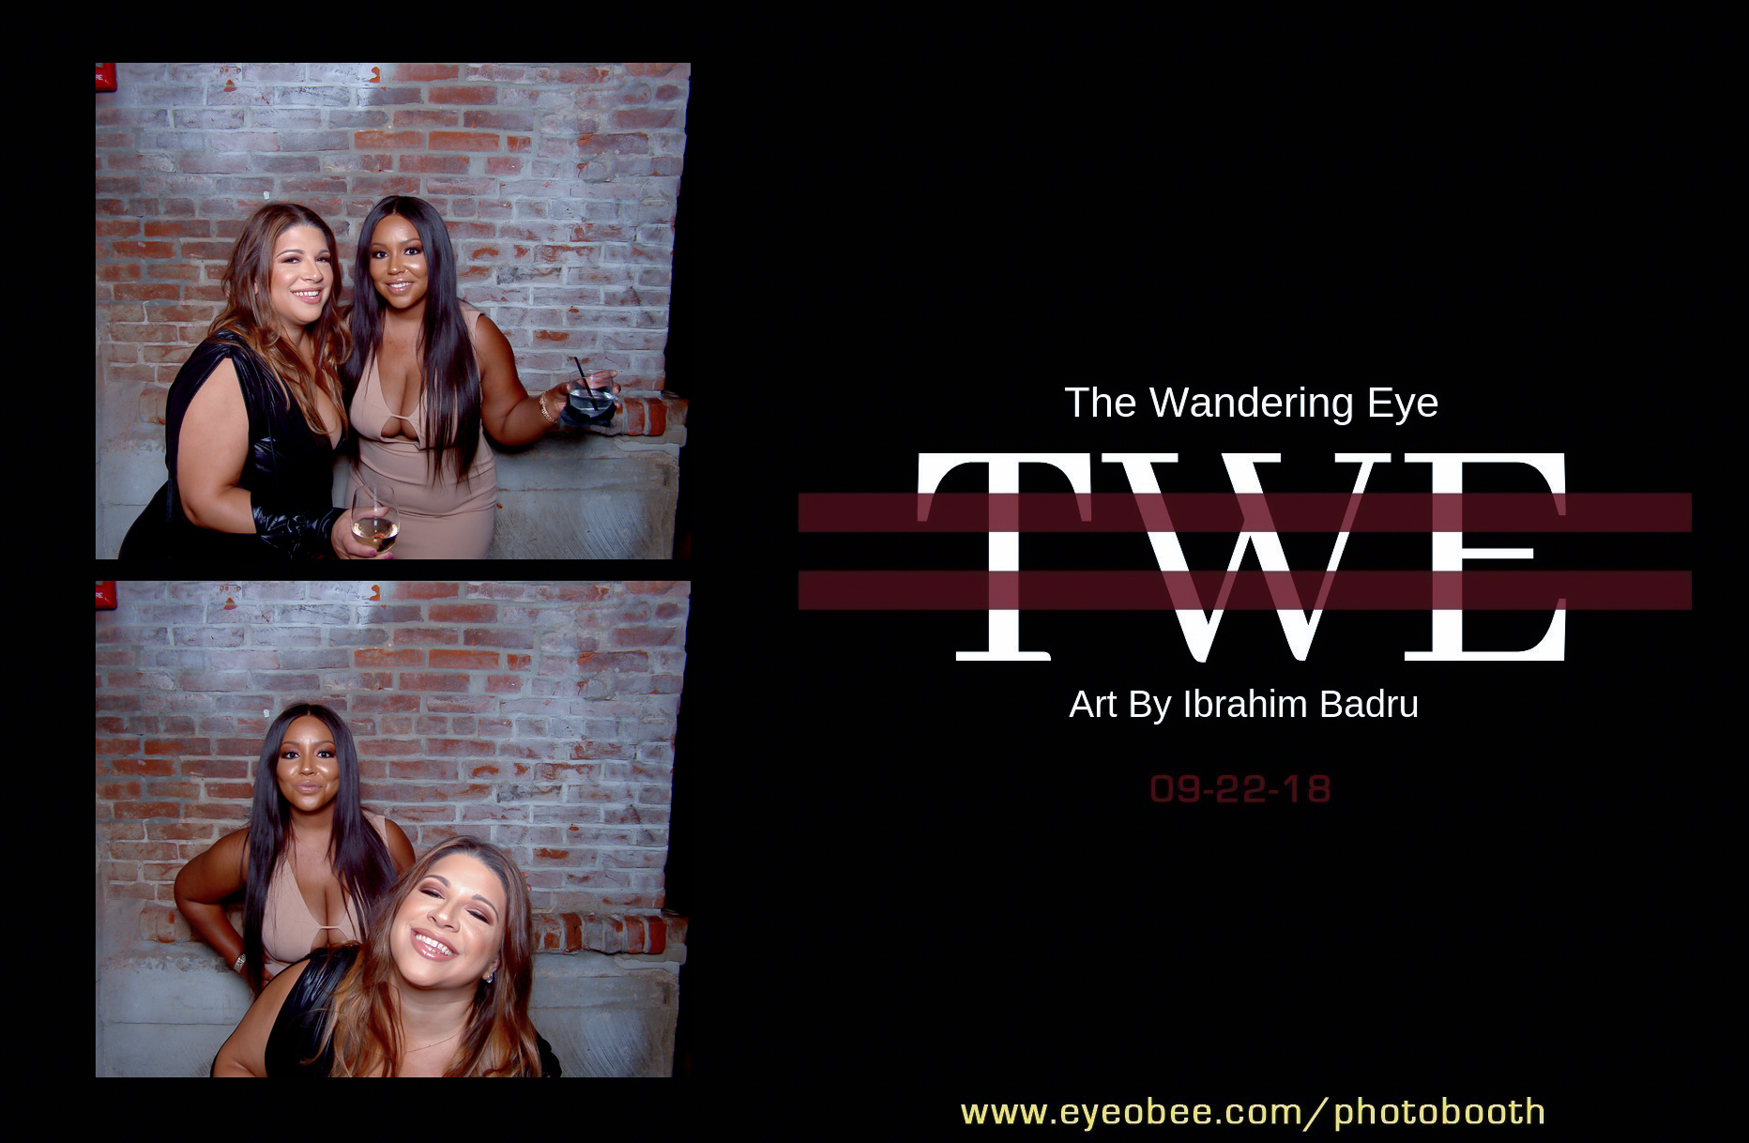 eyeobee PhotoBooth The Wandering eye art by Ibrahim Badru-0-49.jpg